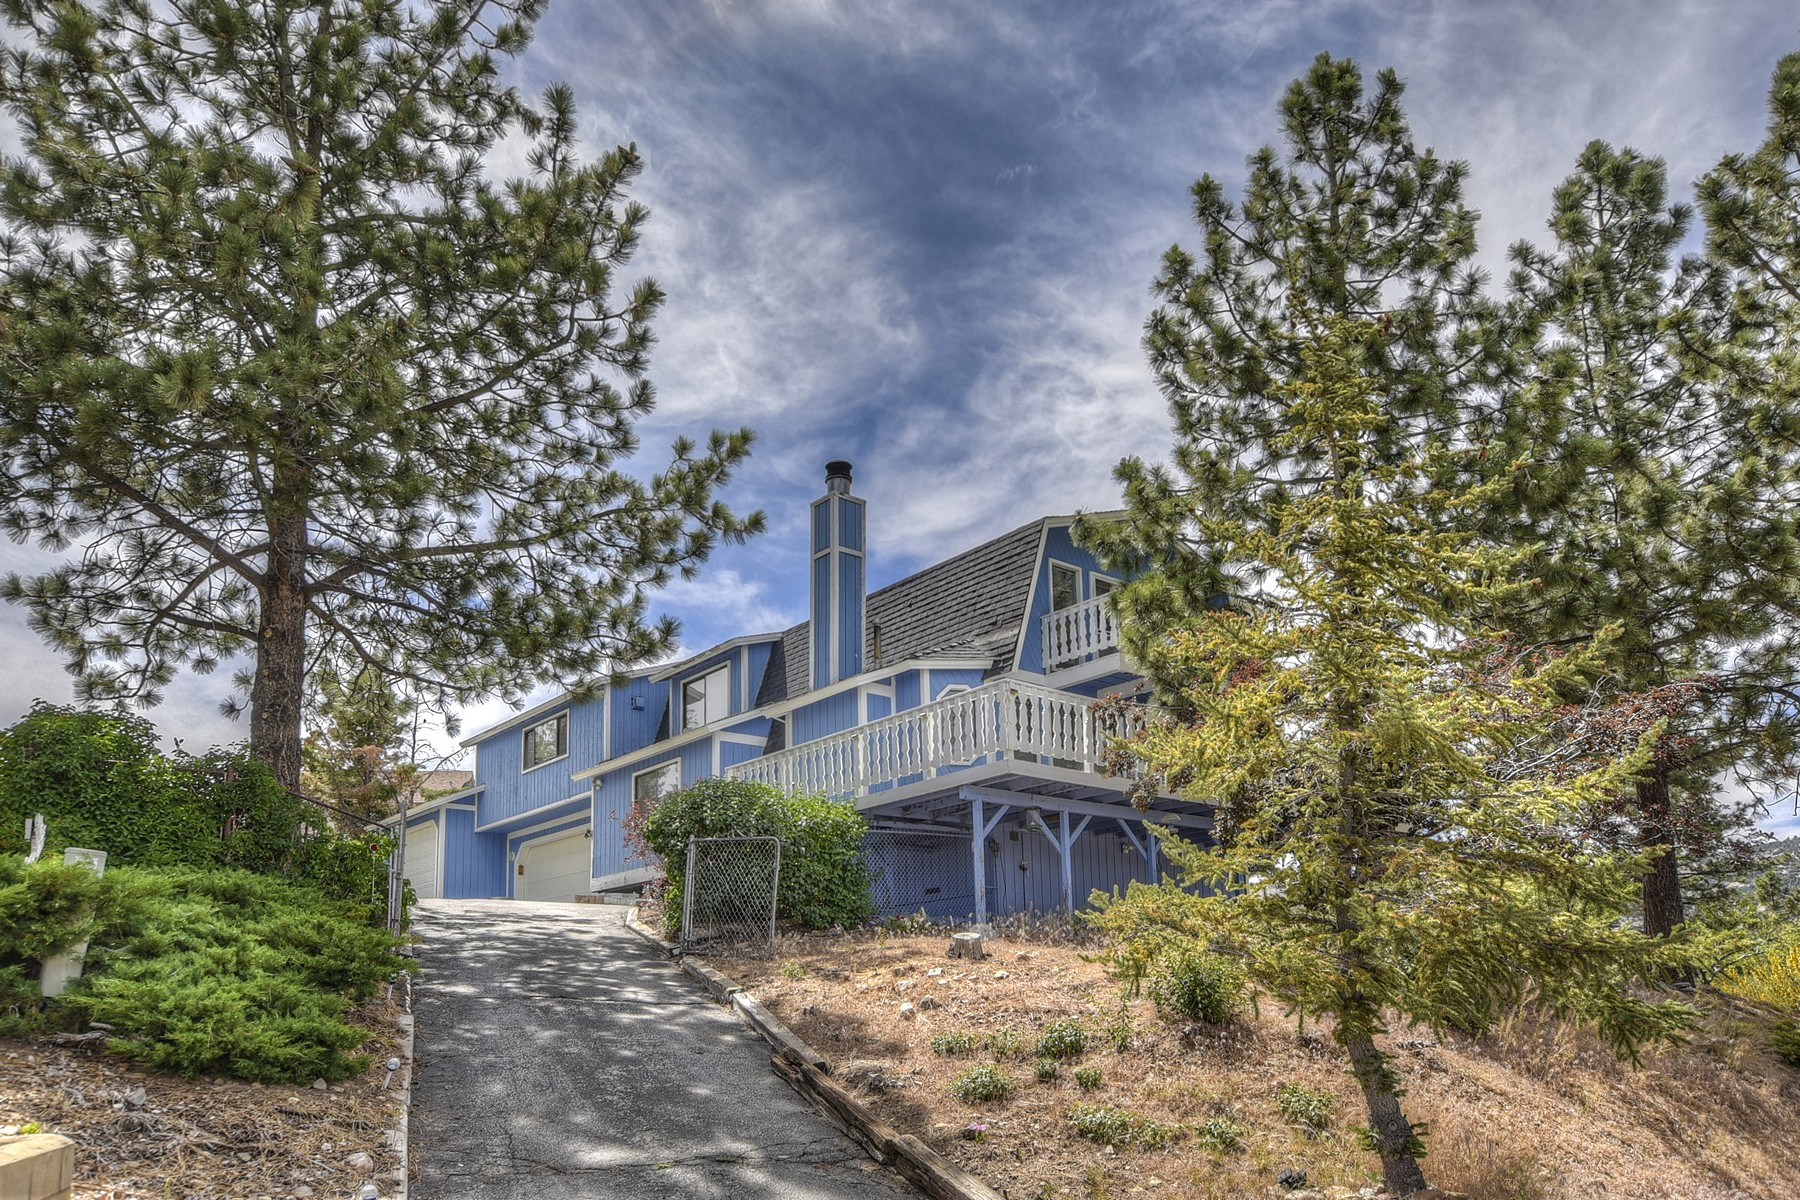 Single Family Homes for Sale at 203 Mann Drive Big Bear City, CA 92314 203 Mann Drive Big Bear City, California 92314 United States